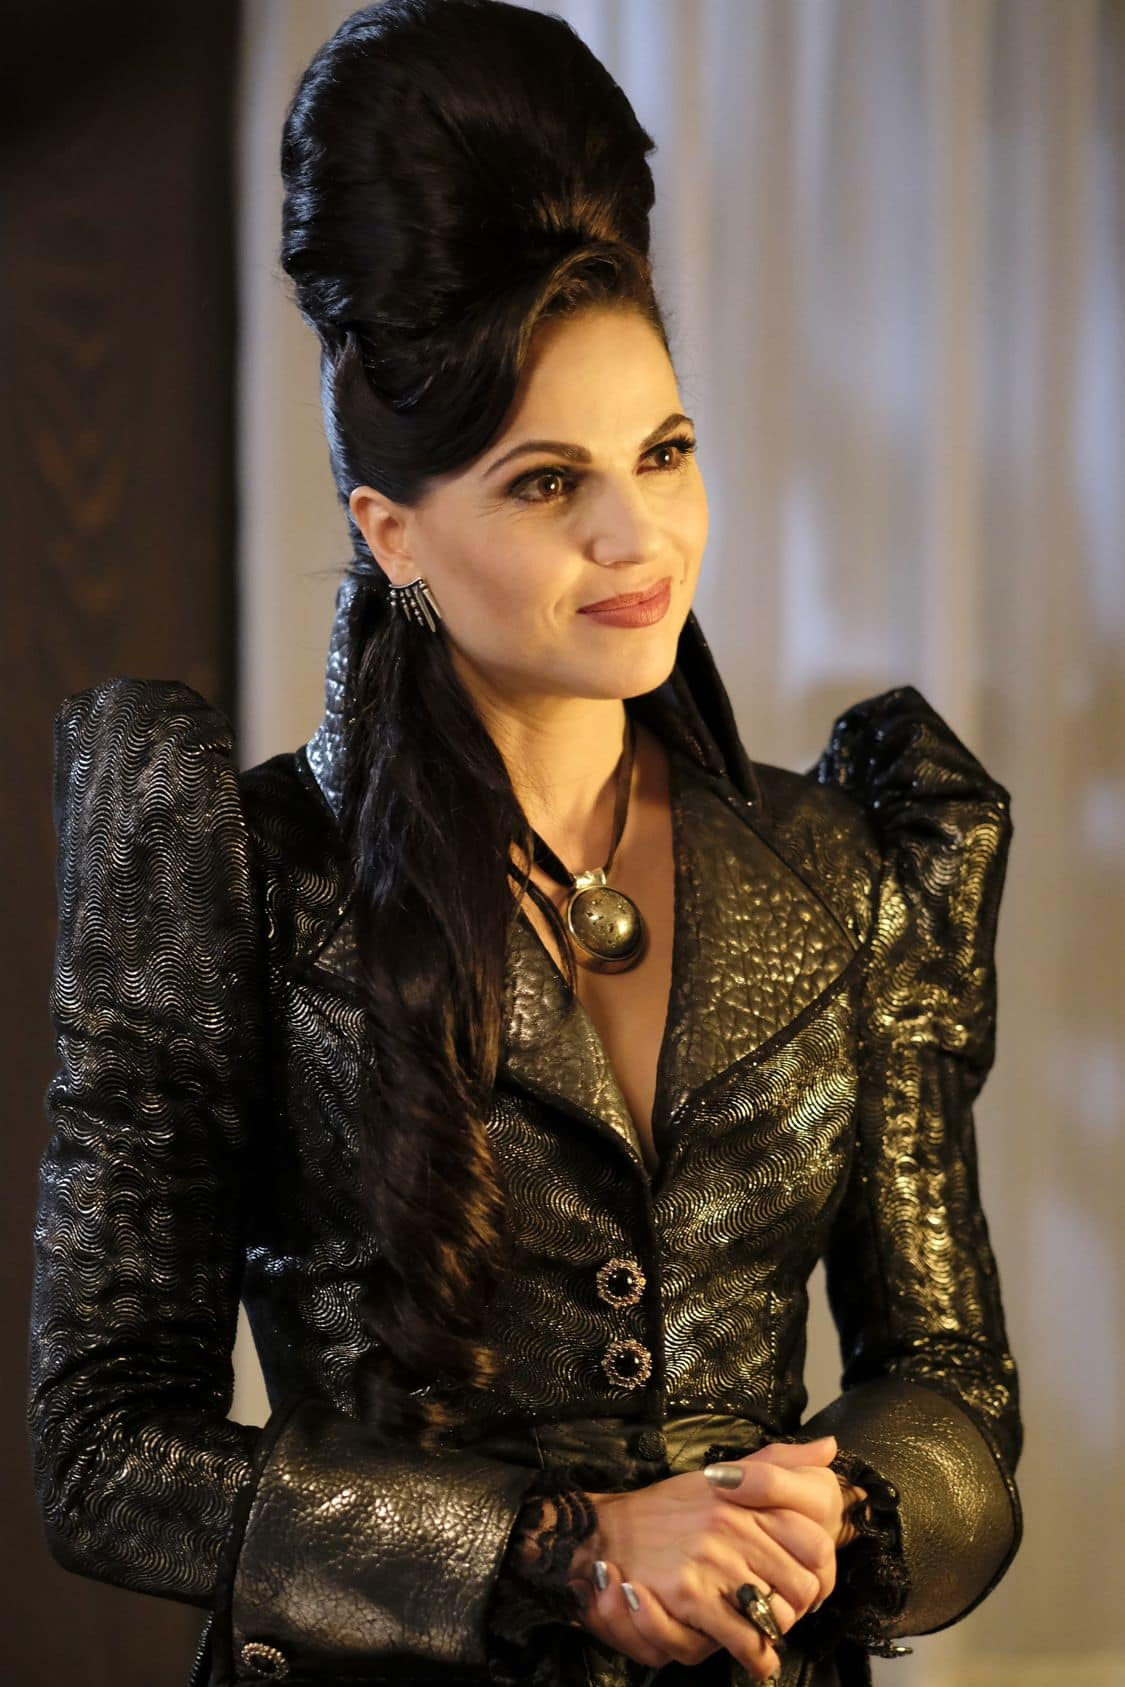 """ONCE UPON A TIME - """"A Bitter Draught"""" - When a mysterious man from the Land of Untold Stories, who has a past with the Evil Queen, arrives in Storybrooke, David and Snow work together with Regina to neutralize the threat. Belle seeks Hook's help finding a safe place to hide away from her husband, Mr. Gold. The Evil Queen continues to try to win Zelena over to her side, while Emma resumes her therapy sessions with Archie and shares her terrifying vision of the future, on """"Once Upon a Time,"""" SUNDAY, OCTOBER 2 (8:00-9:00 p.m. EDT), on the ABC Television Network. (ABC/Eike Schroter) LANA PARRILLA"""